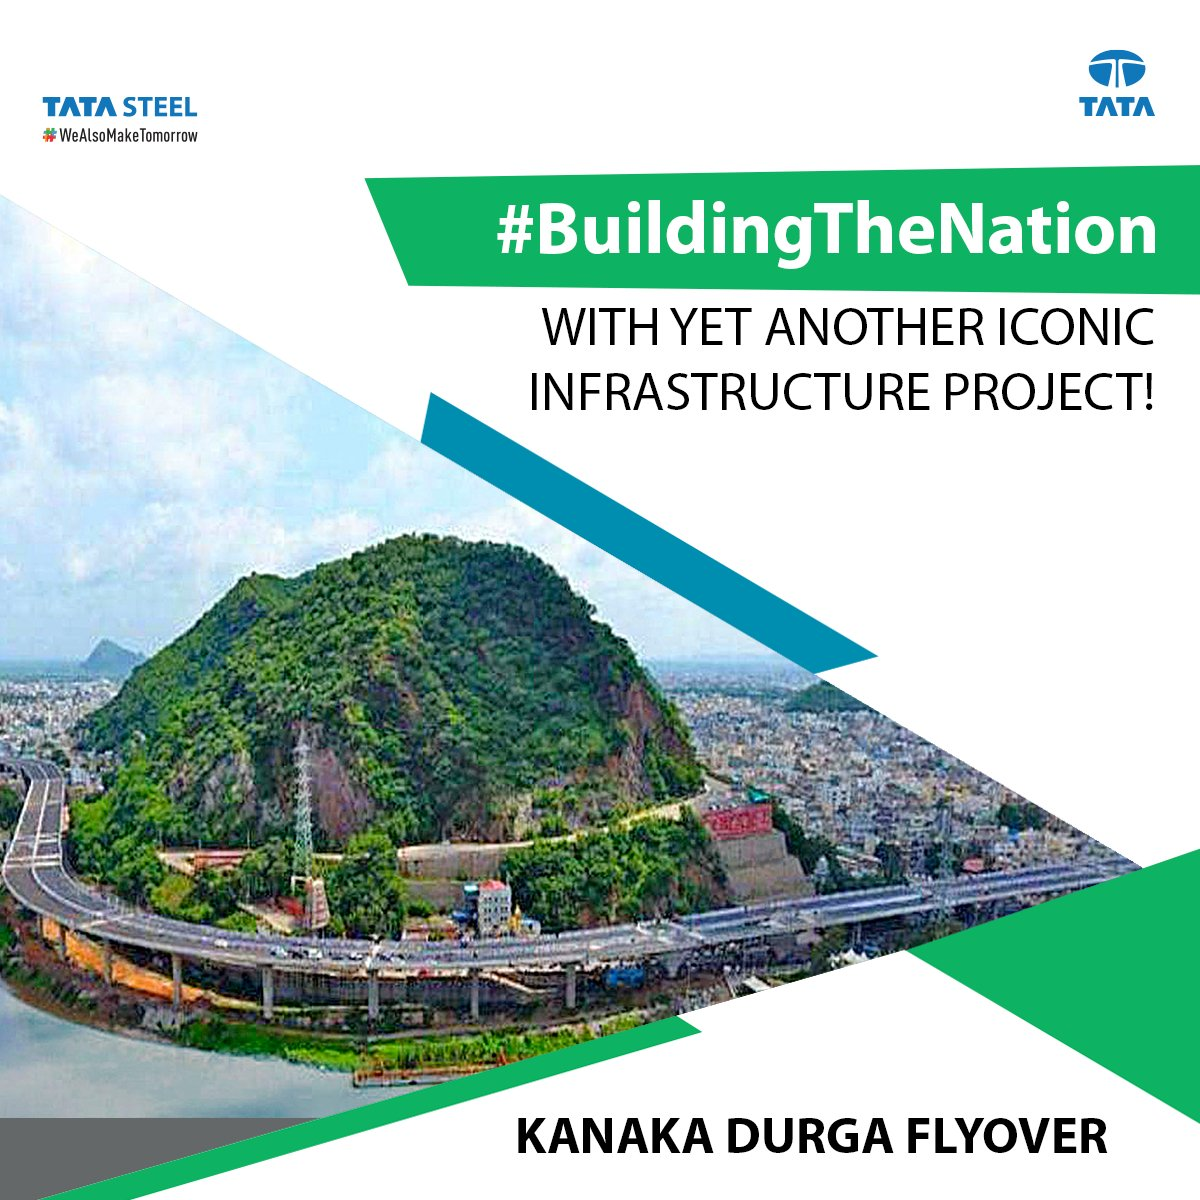 Our commitment to #BuildingTheNation sees yet another landmark project completed. We supplied ~80% of the steel, which included 2,000 mt of LRPC strands & 10,000 mt TMT bars, for the Kanaka Durga flyover in Andhra Pradesh. https://t.co/xKmFZHk2YO #TataSteel #WeAlsoMakeTomorrow https://t.co/Yn7xAX5Urr